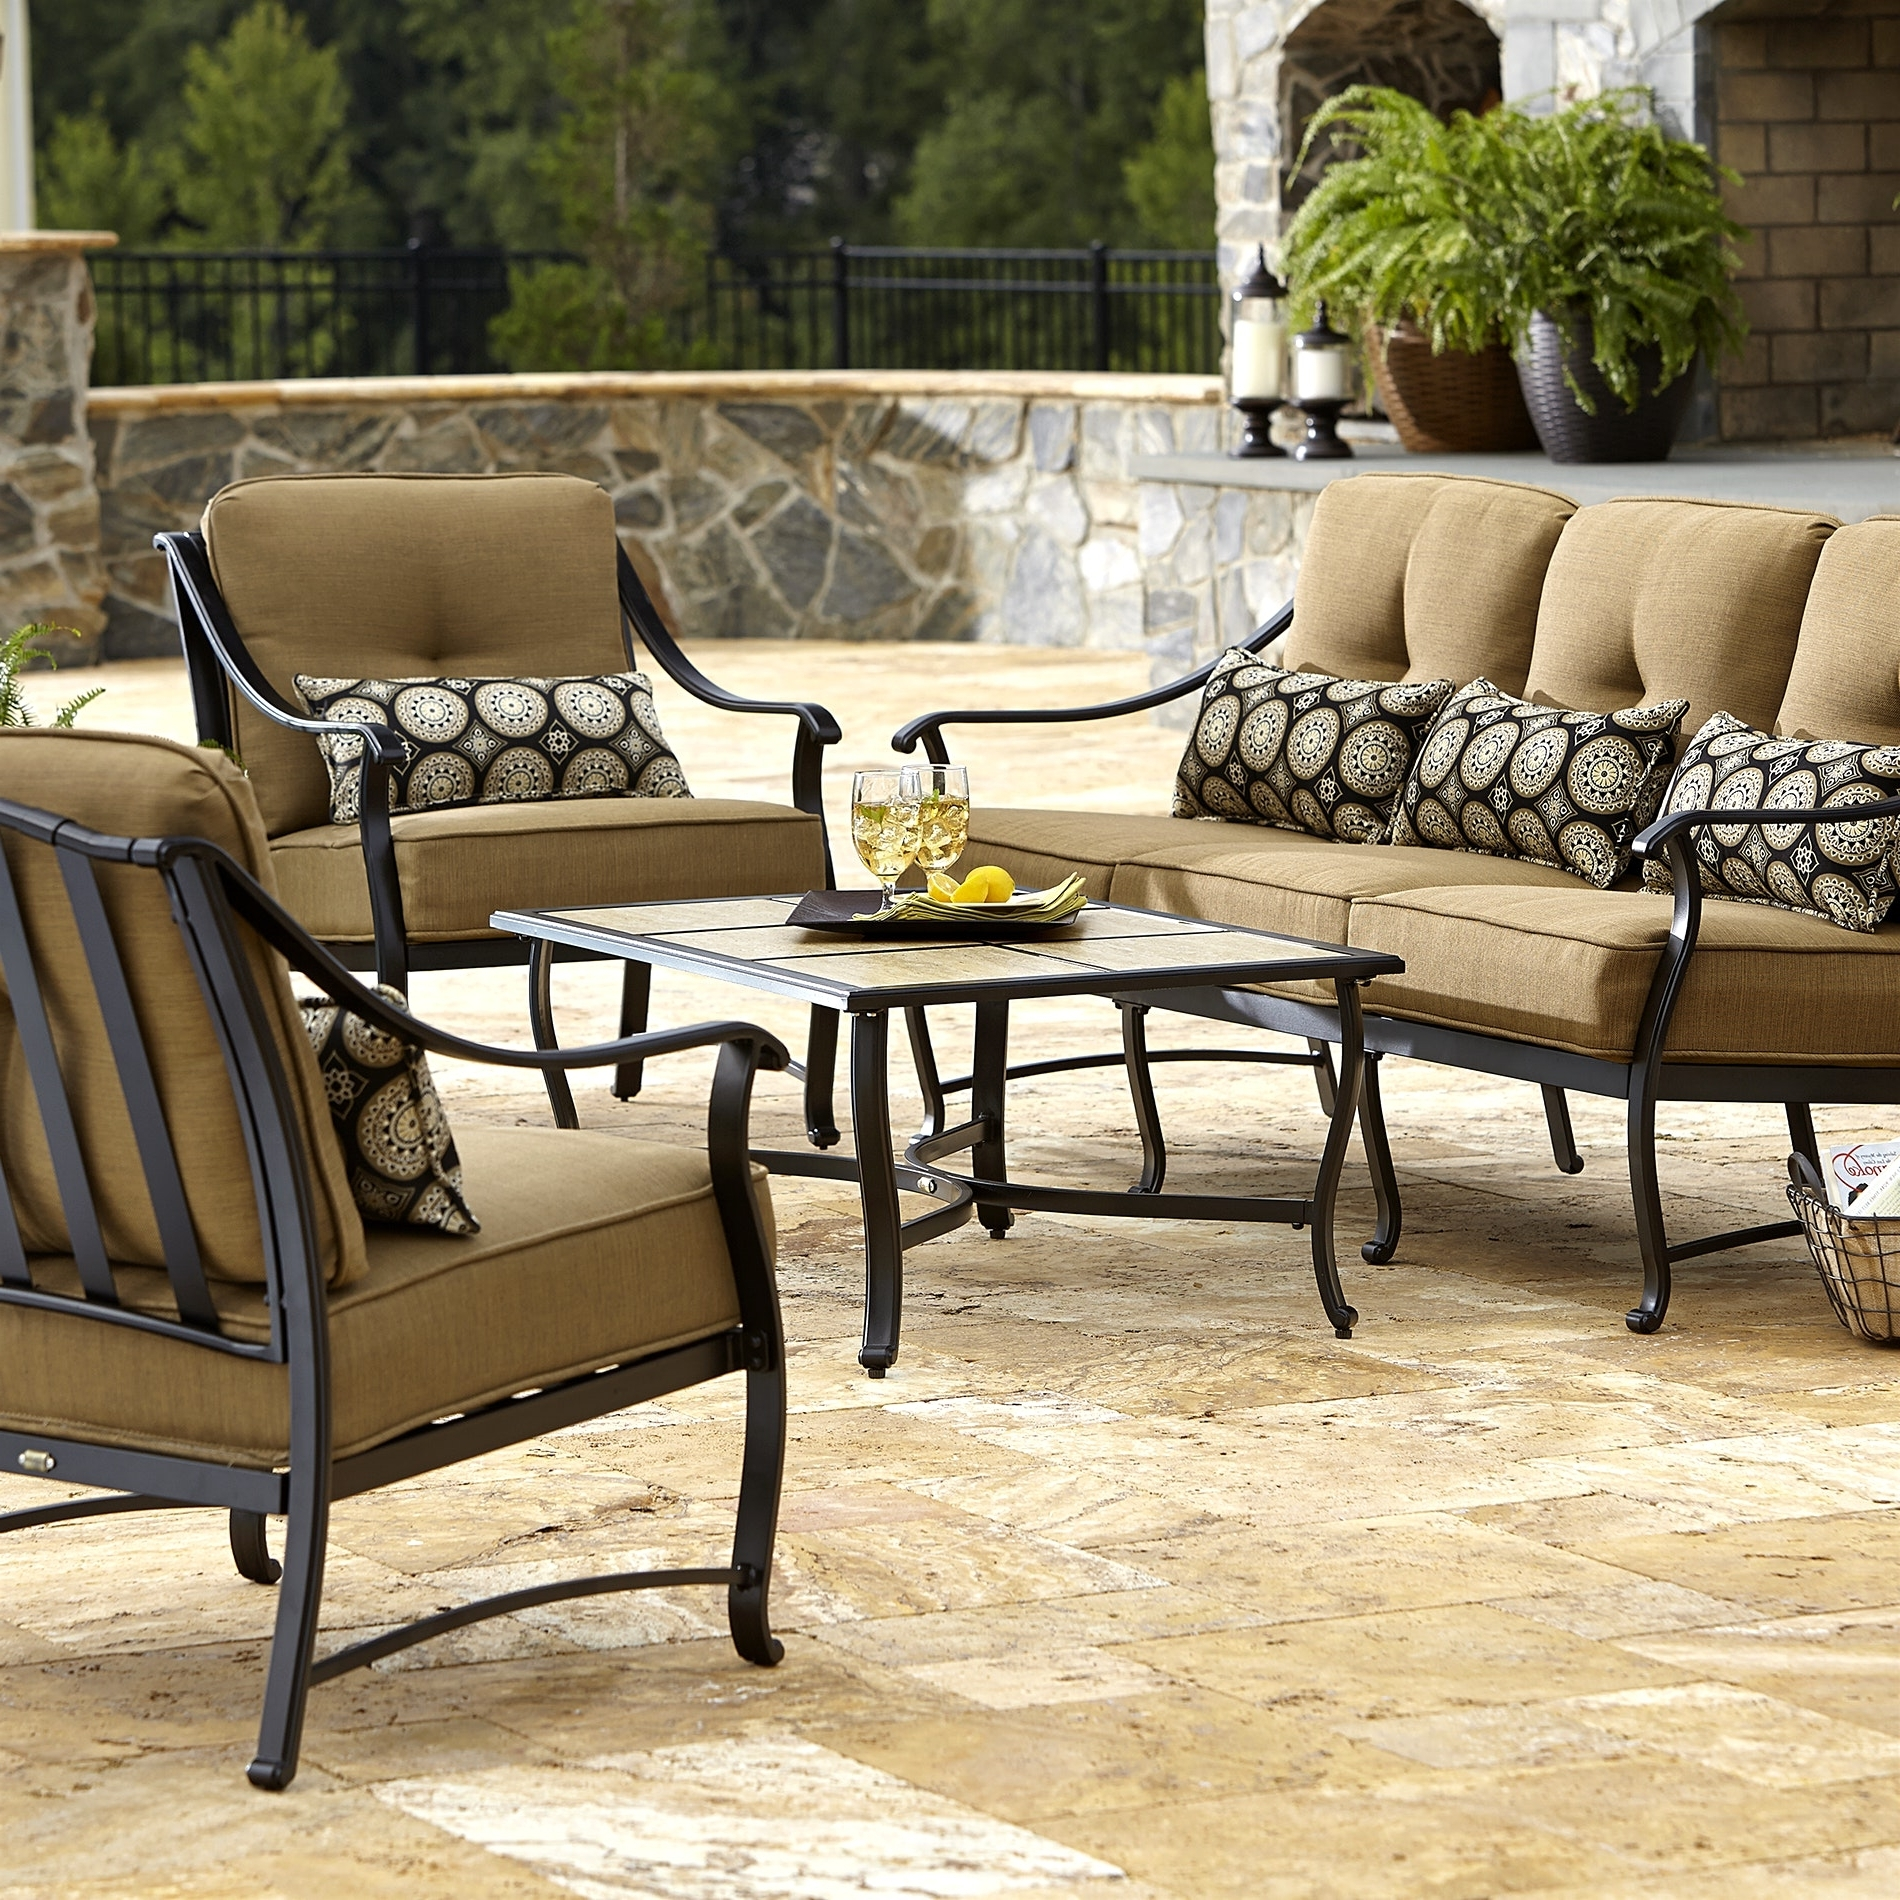 Patio Conversation Sets At Sears Regarding Most Popular 45 Sears Lazy Boy Patio Furniture, Lazy Boy Patio Furniturekbdphoto (View 14 of 20)